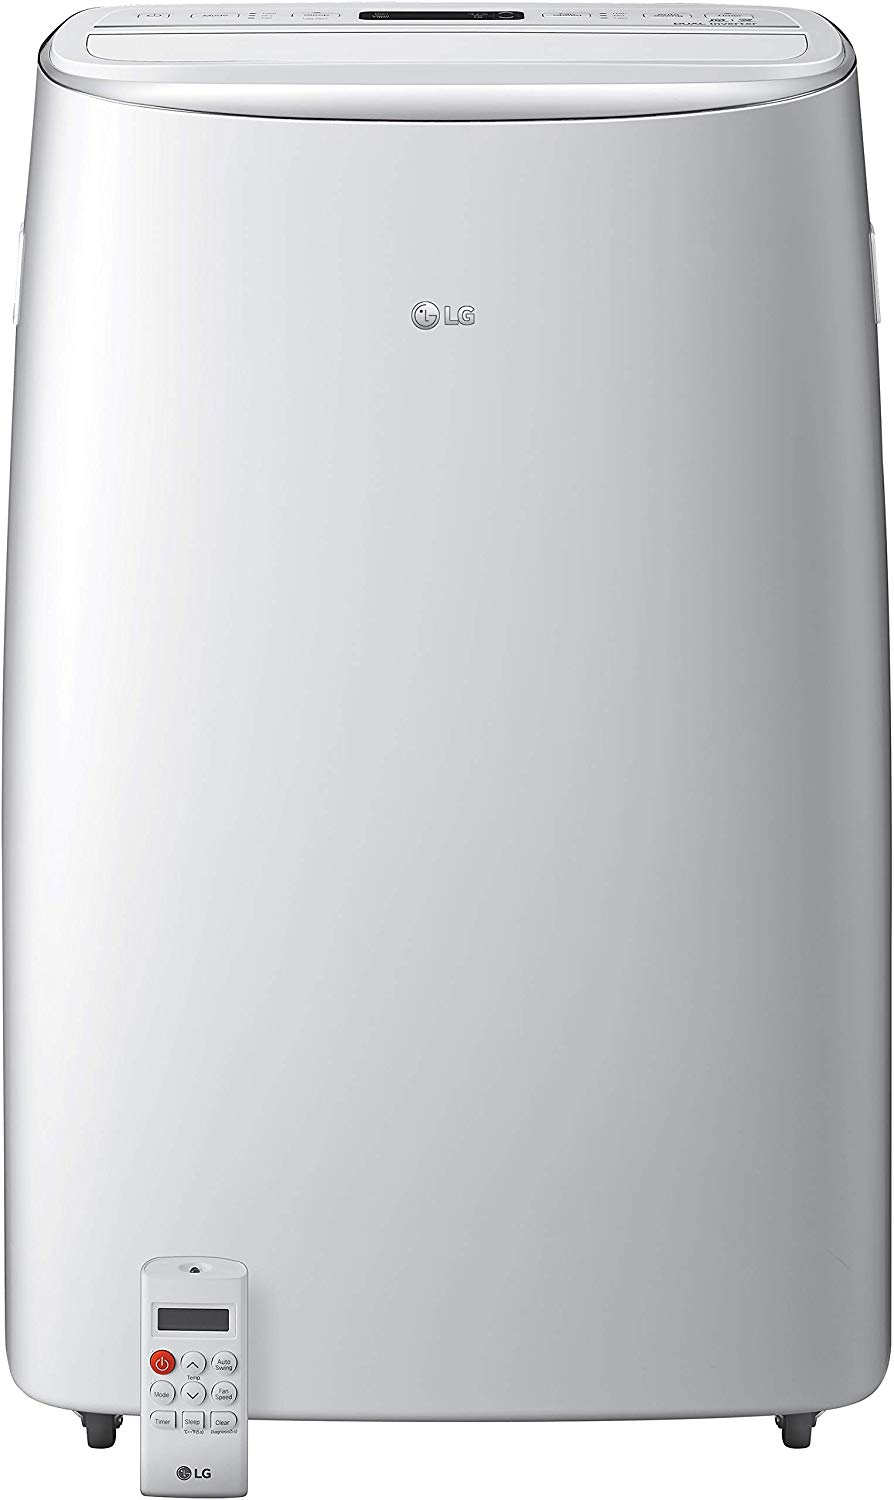 LG 115V Dual Inverter Technology Portable Air Conditioner